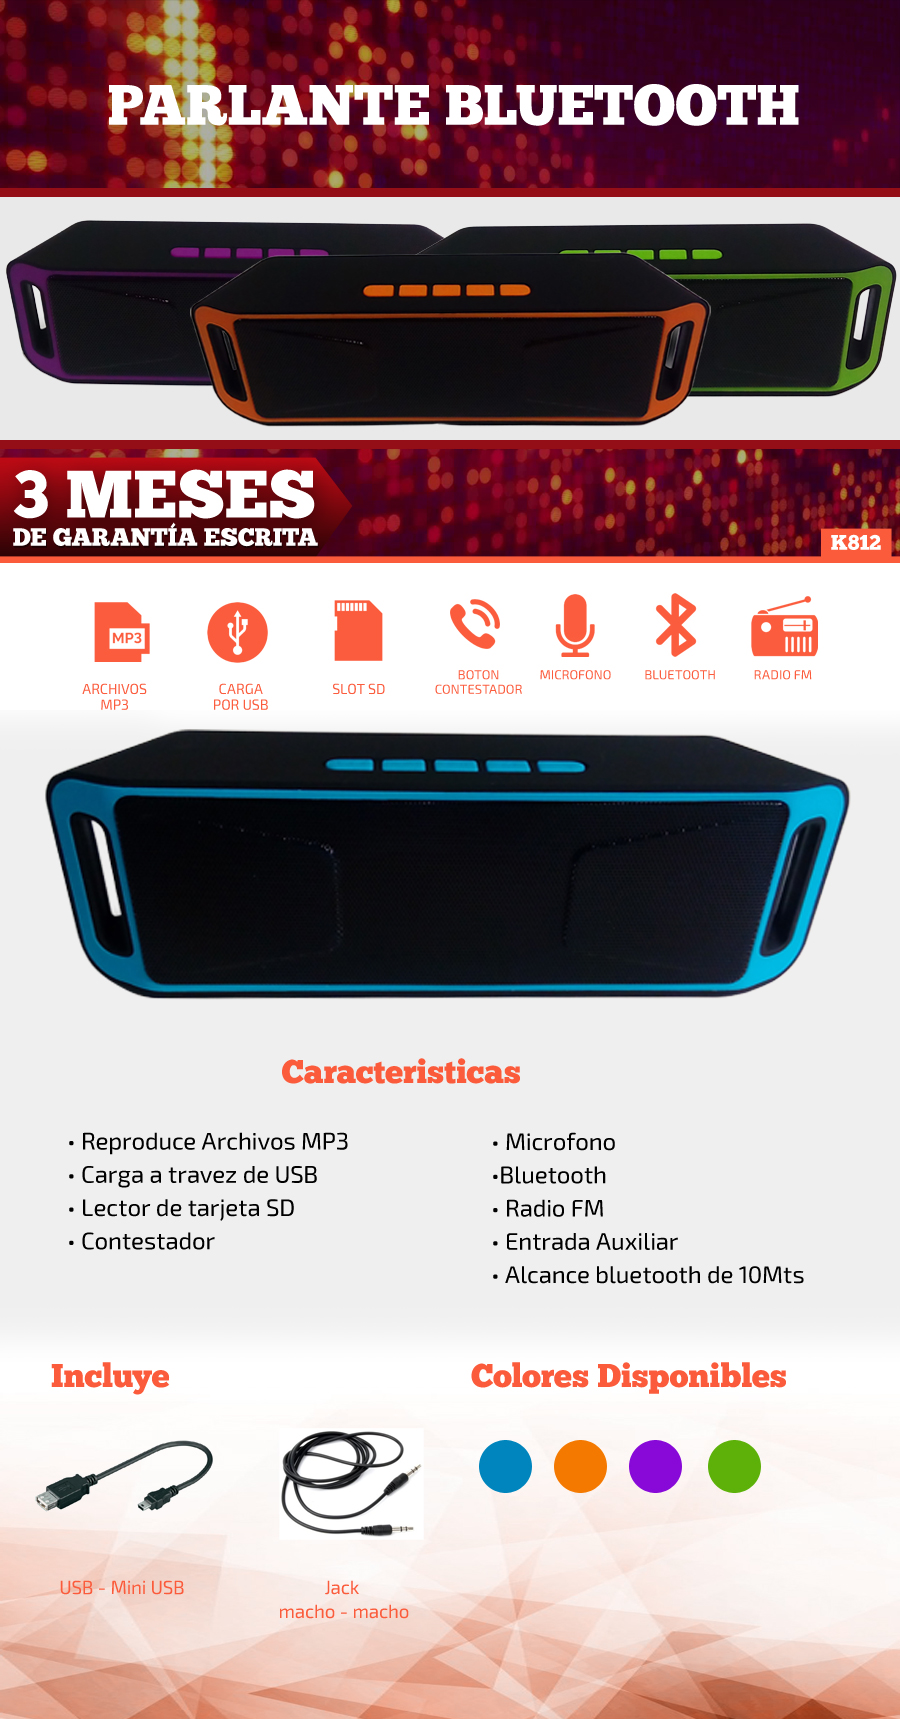 Parlante Bluetooth Funcion Radio  FM | K816 |